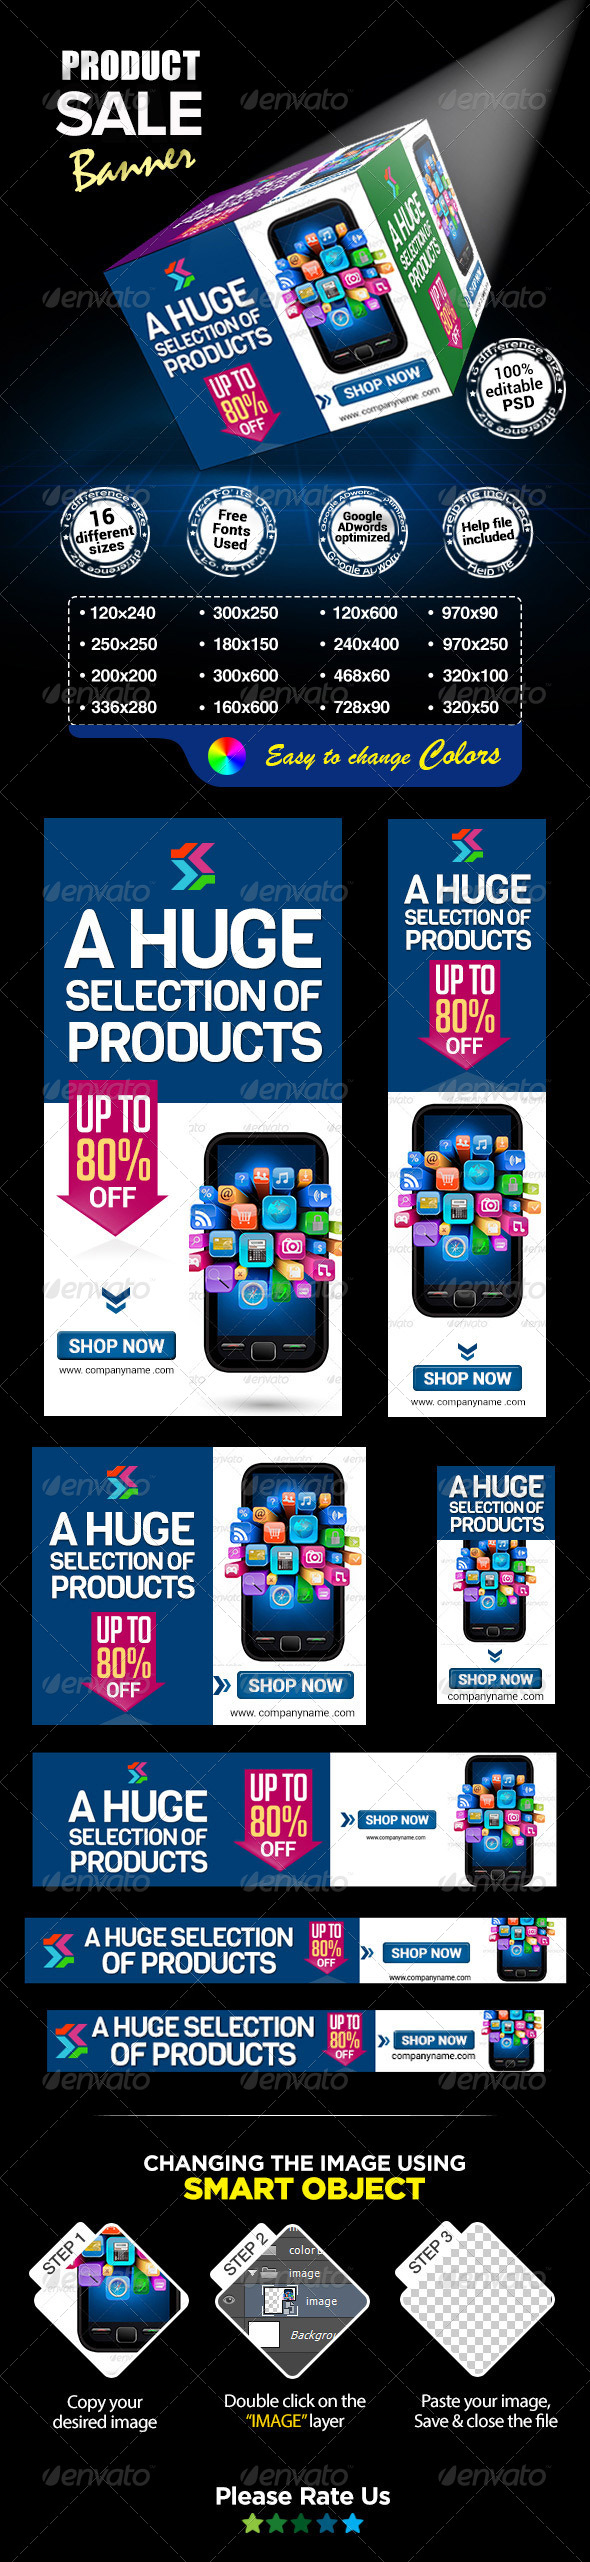 GraphicRiver Product Sale Banners 7490034